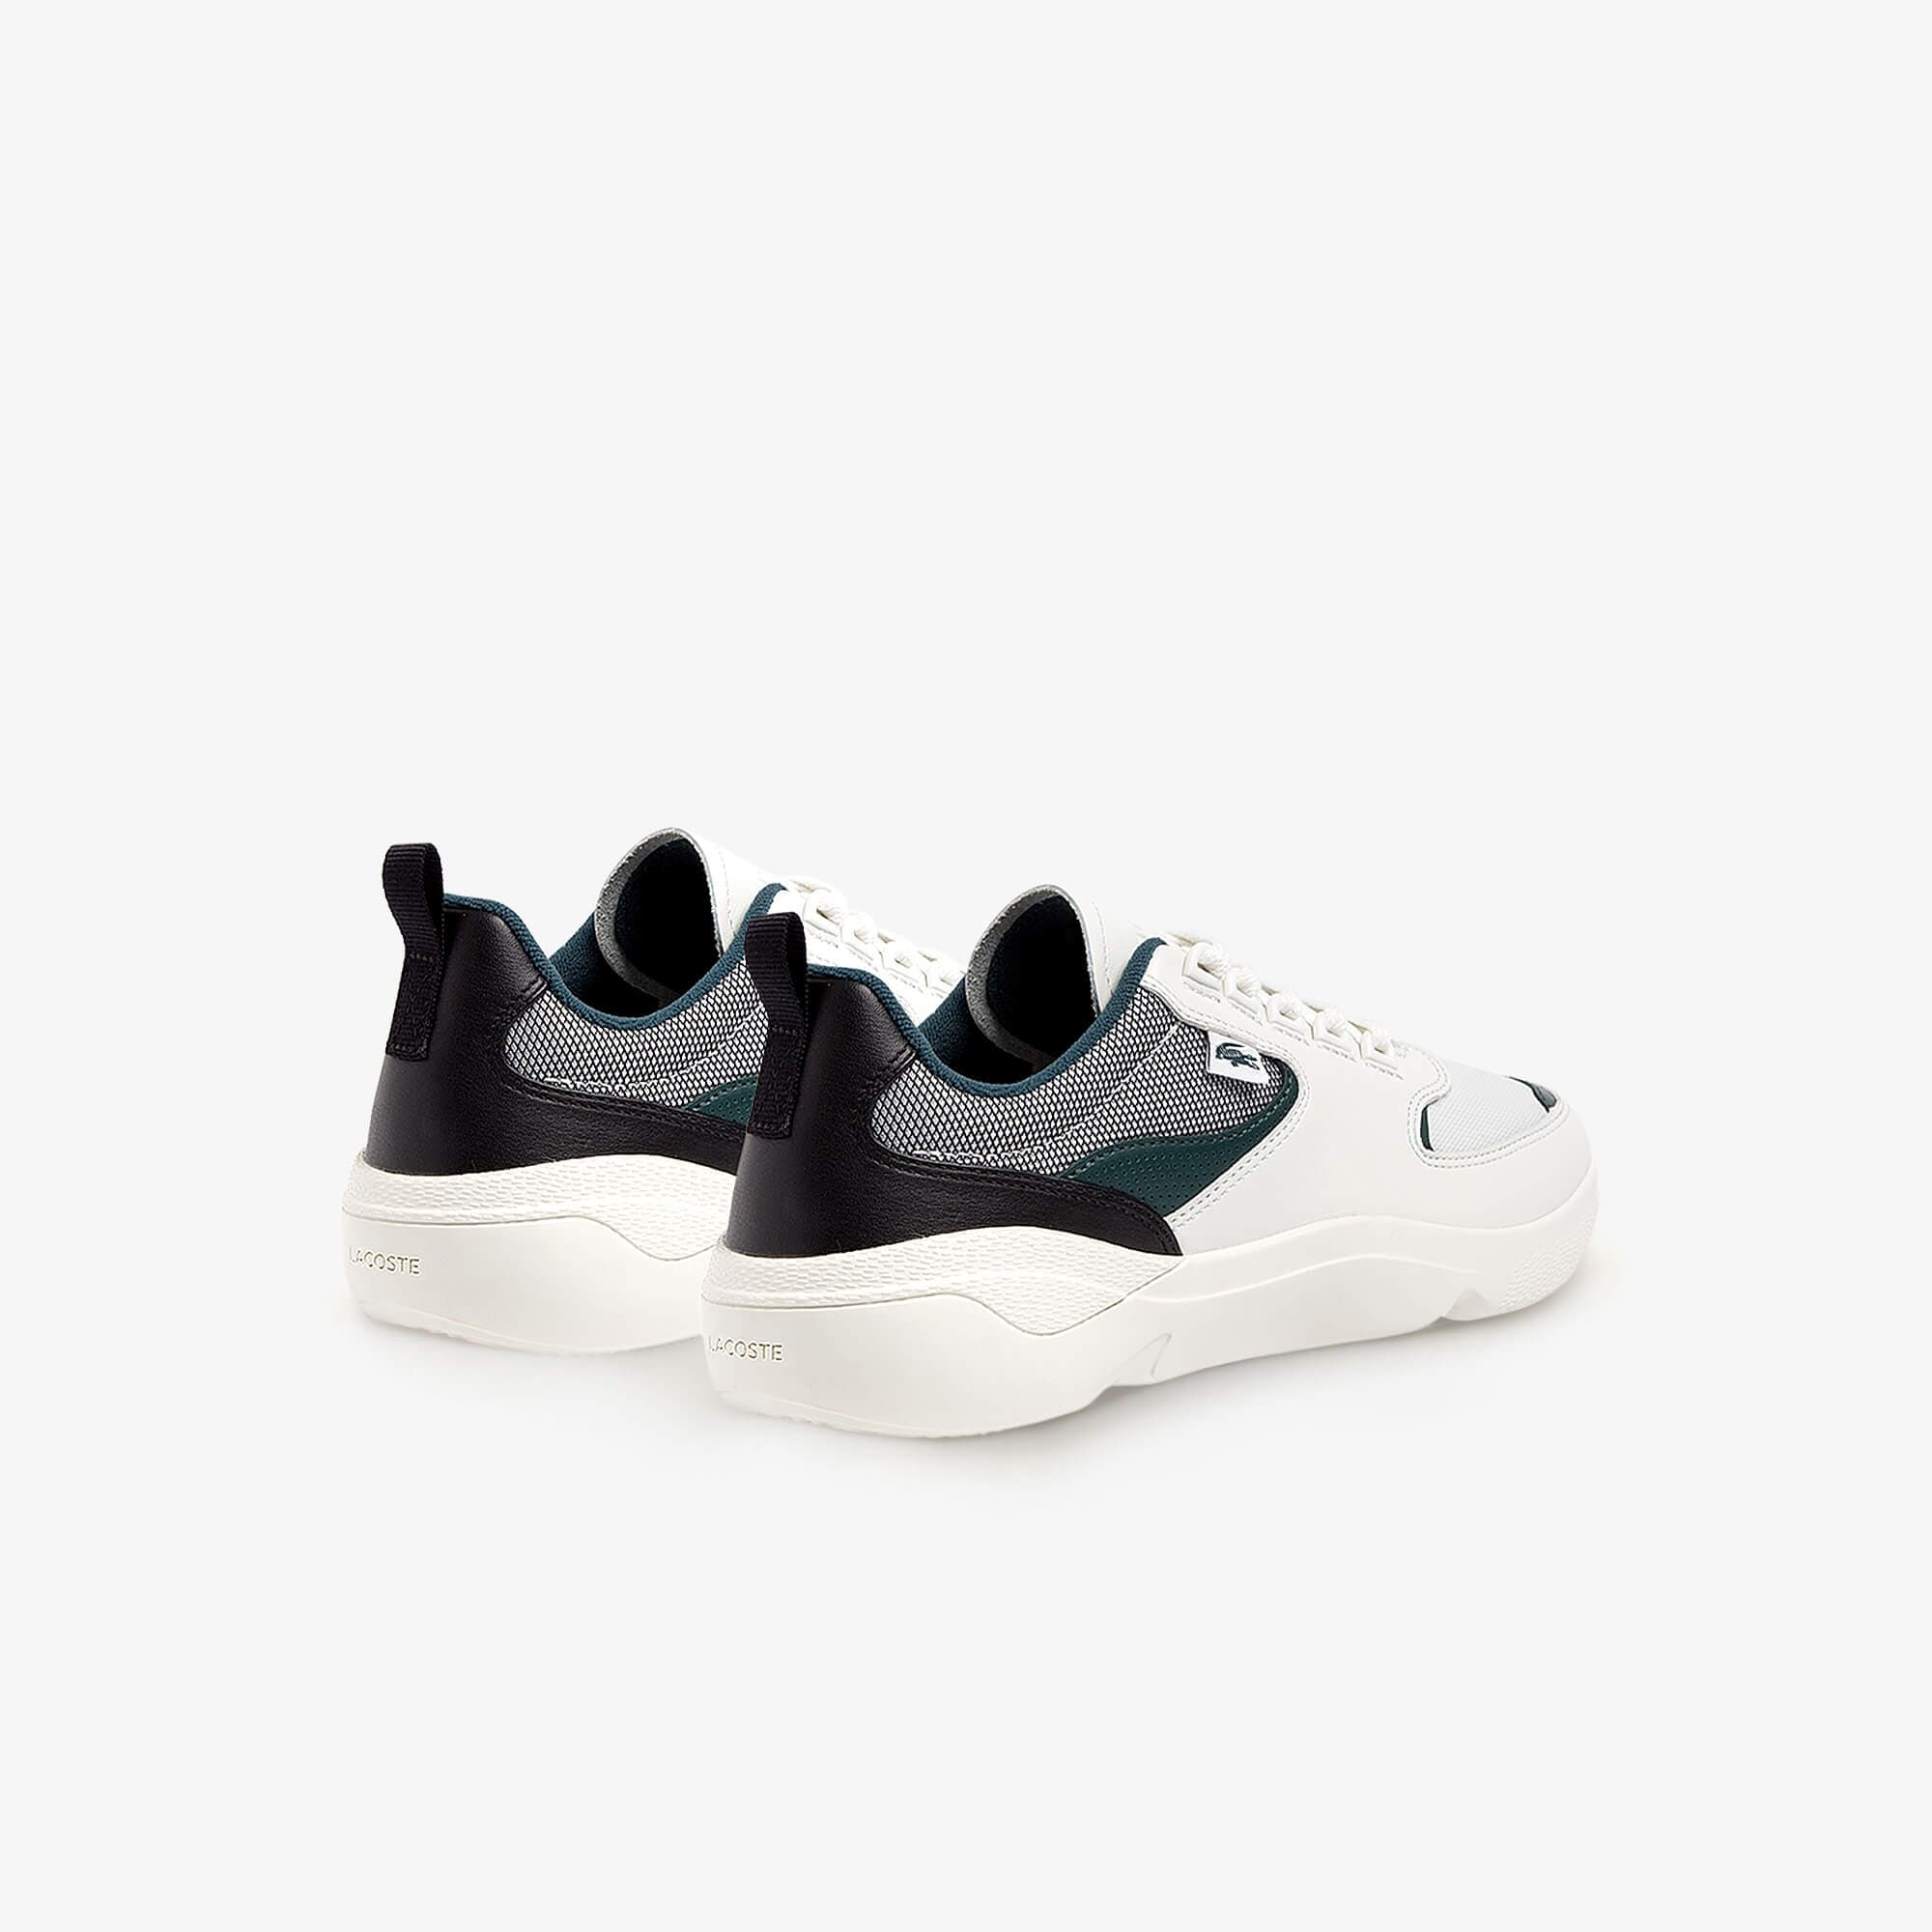 24a90b945 Men s WildCard Leather Sneakers